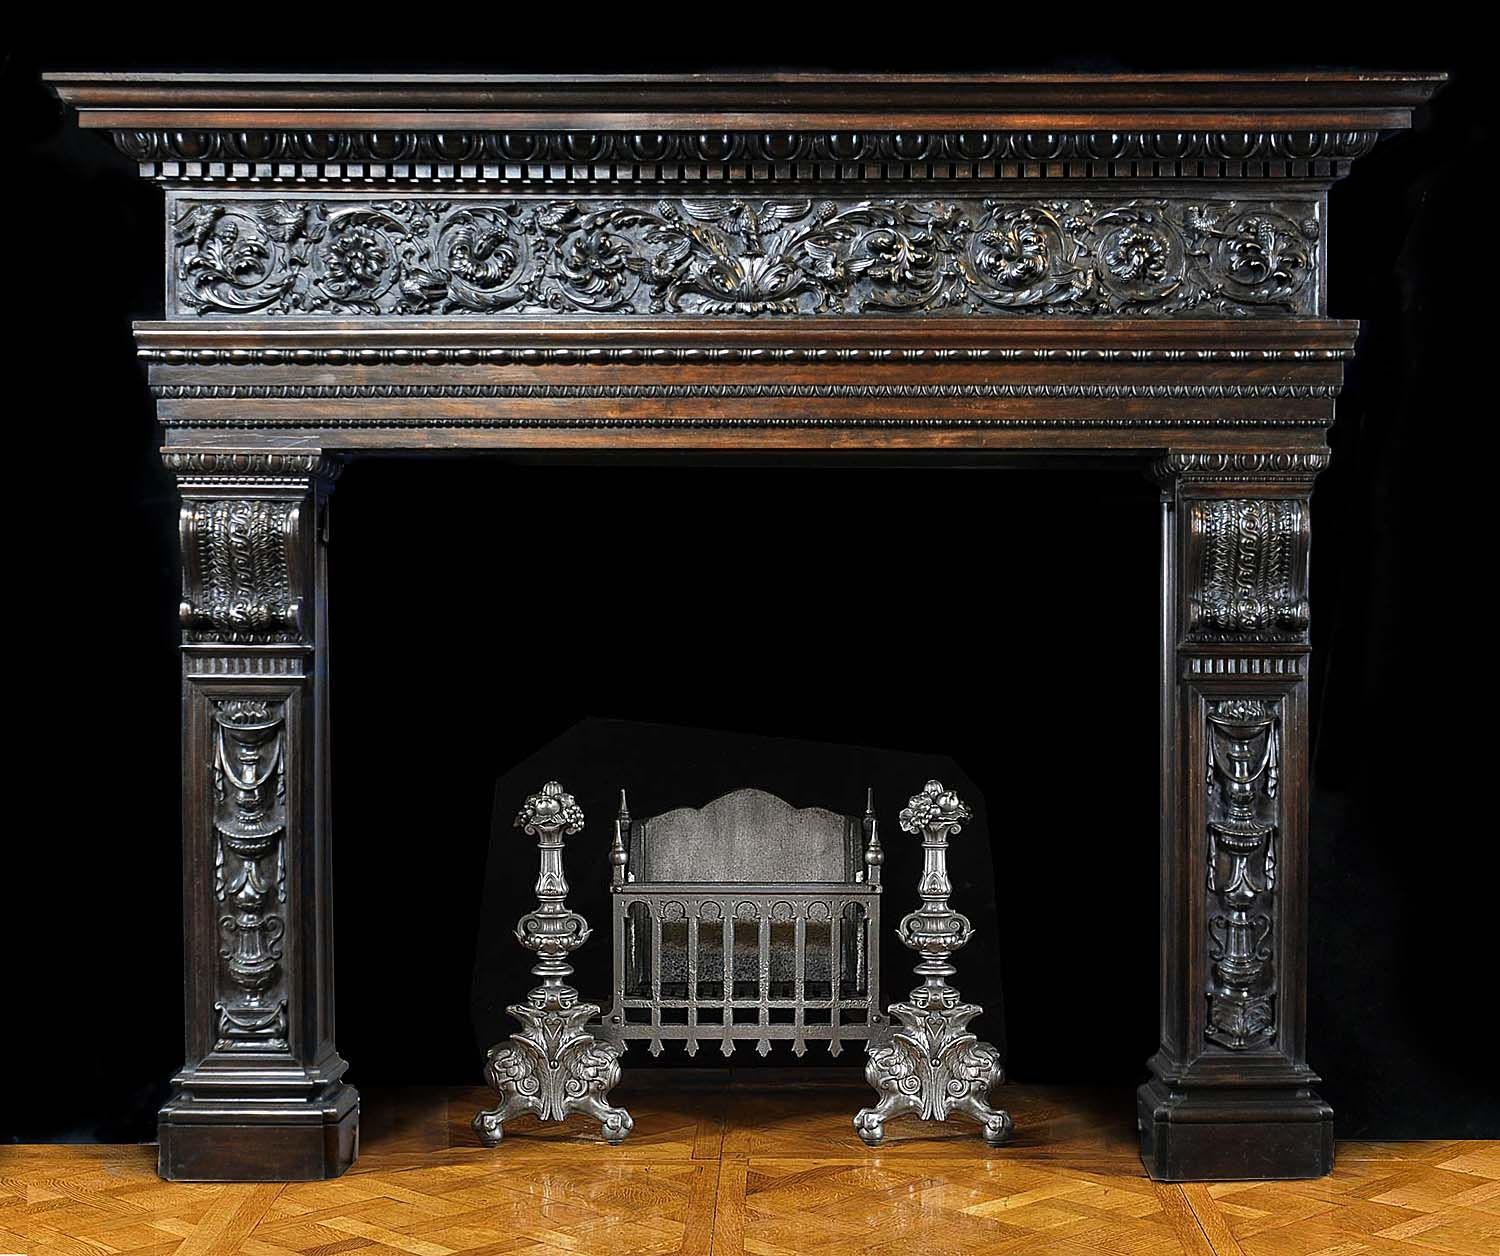 antique fireplace mantels on pinterest fireplace mantels